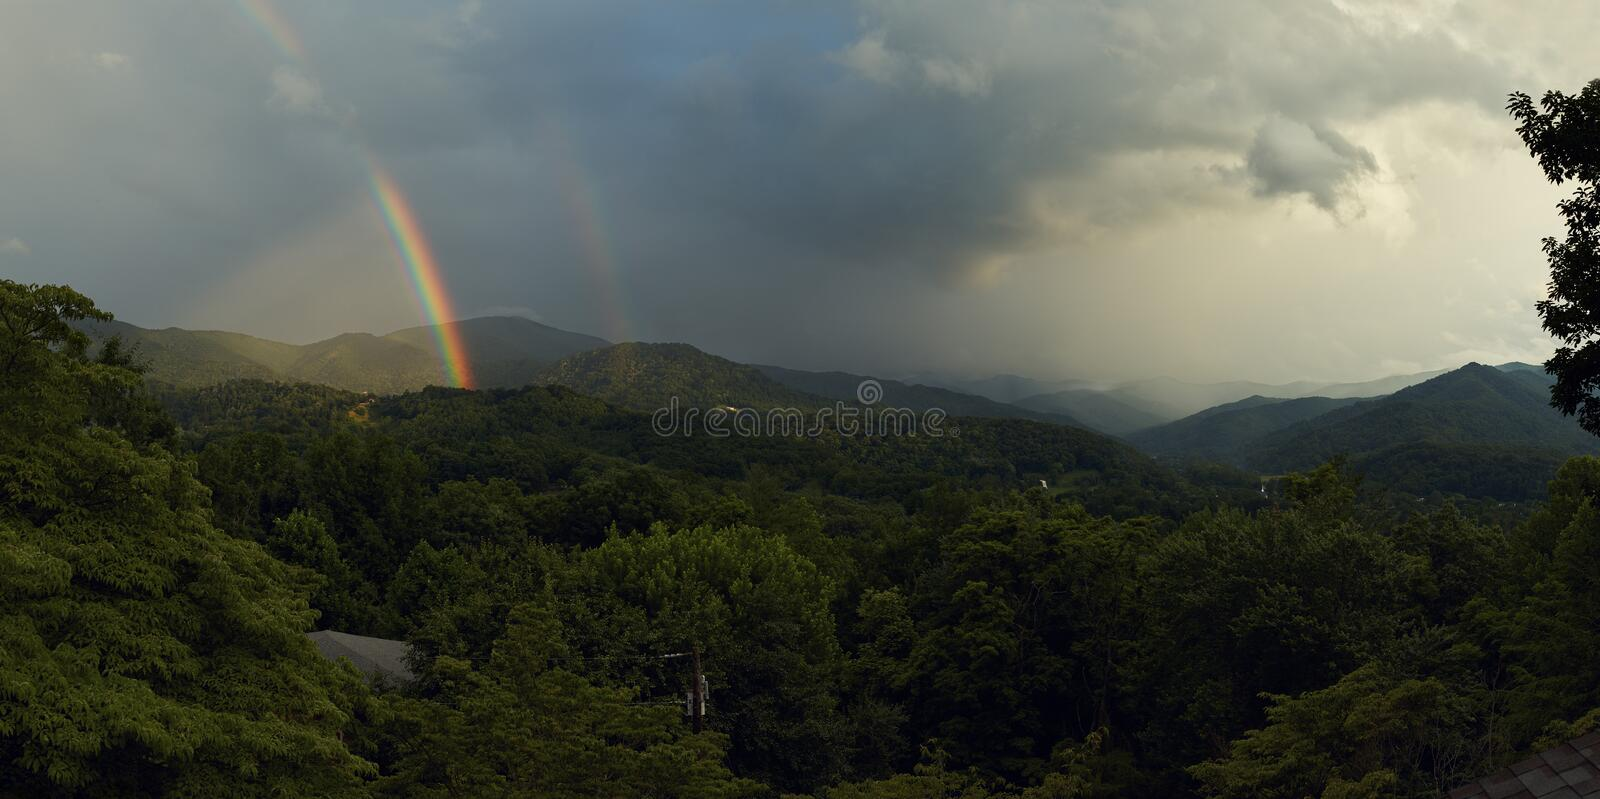 Rainbow over the Mountains. A rainbow over the mountains in Waynesville, North Carolina included in a panoramic stock photo